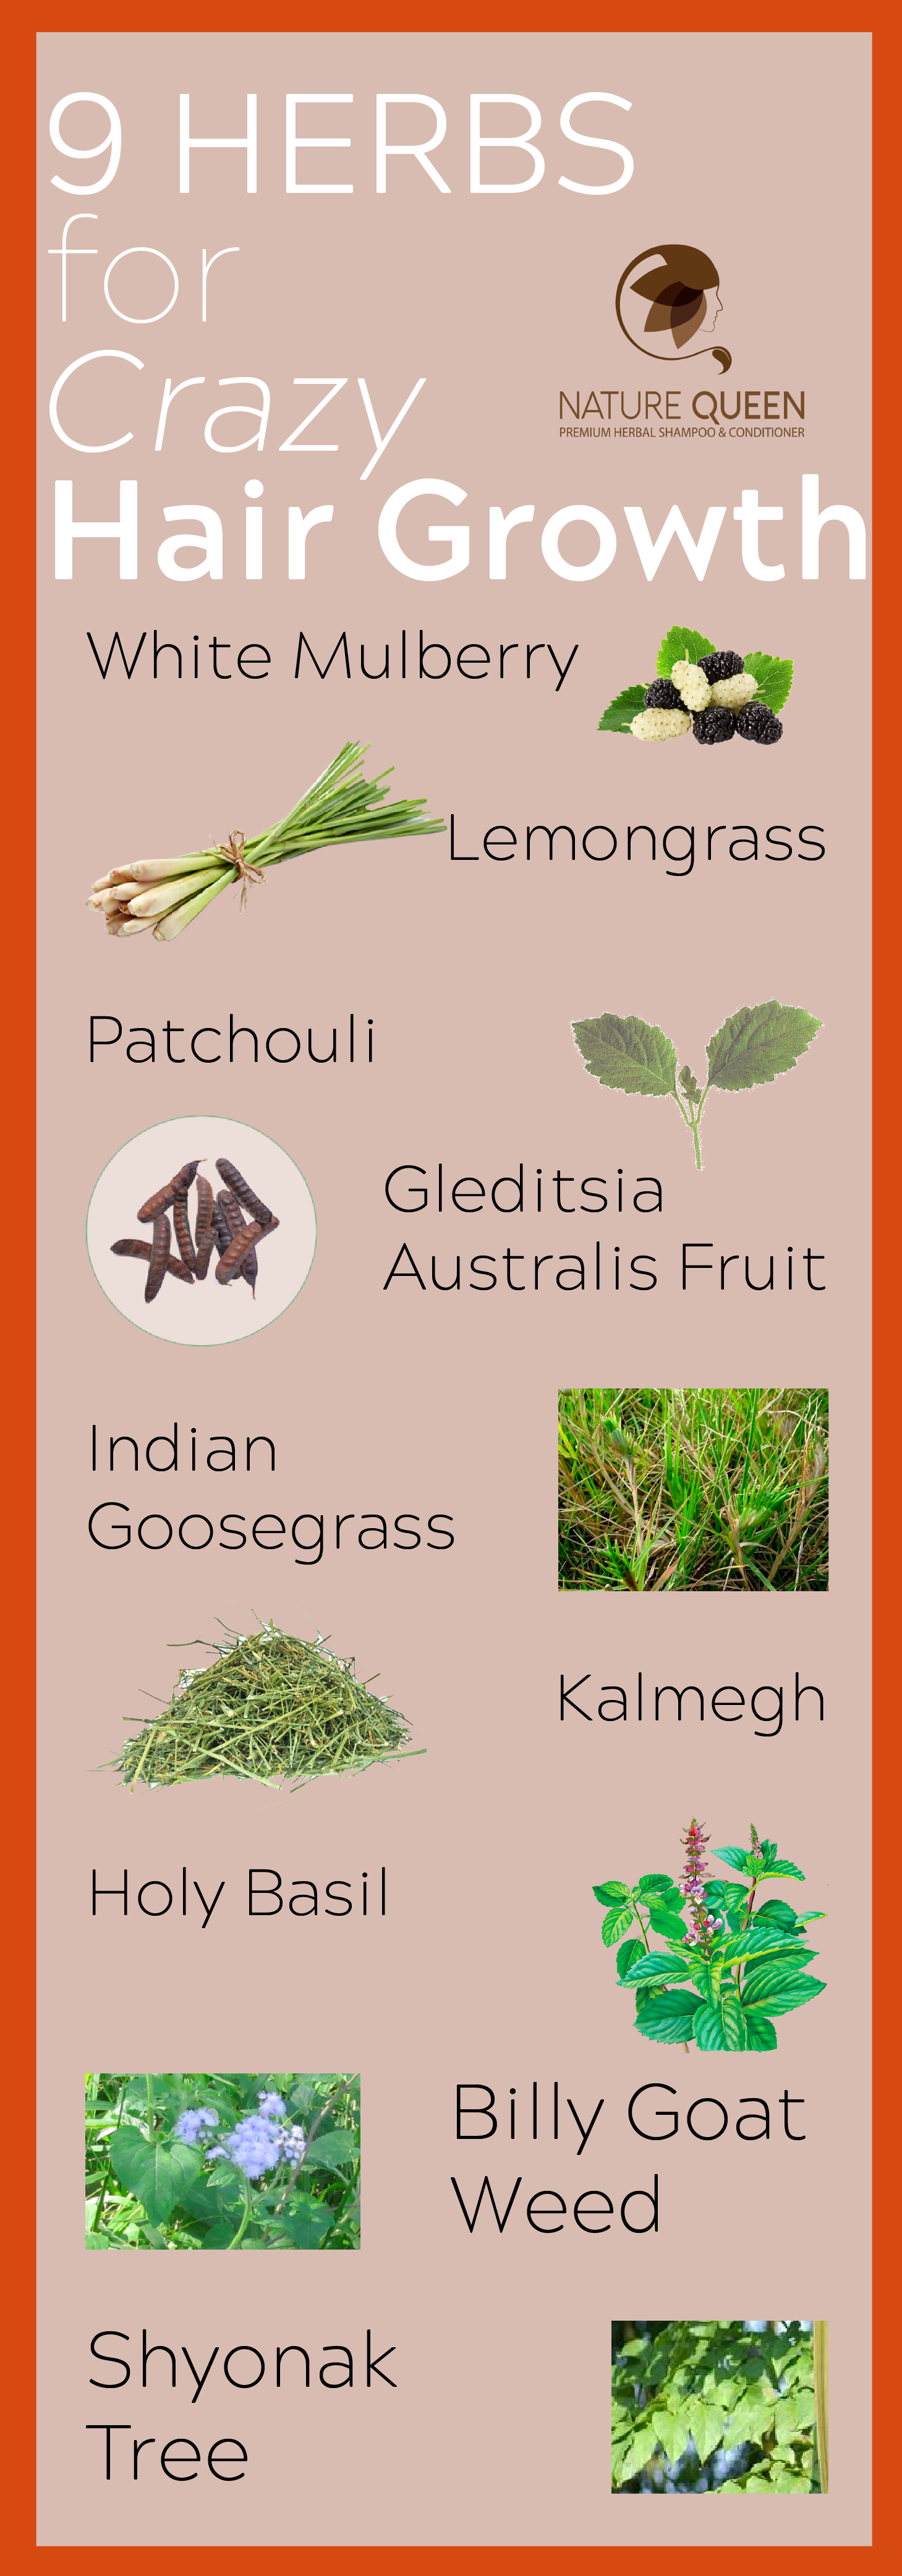 9 herbs for crazy hair growth: white mulberry, lemongrass, patchouli